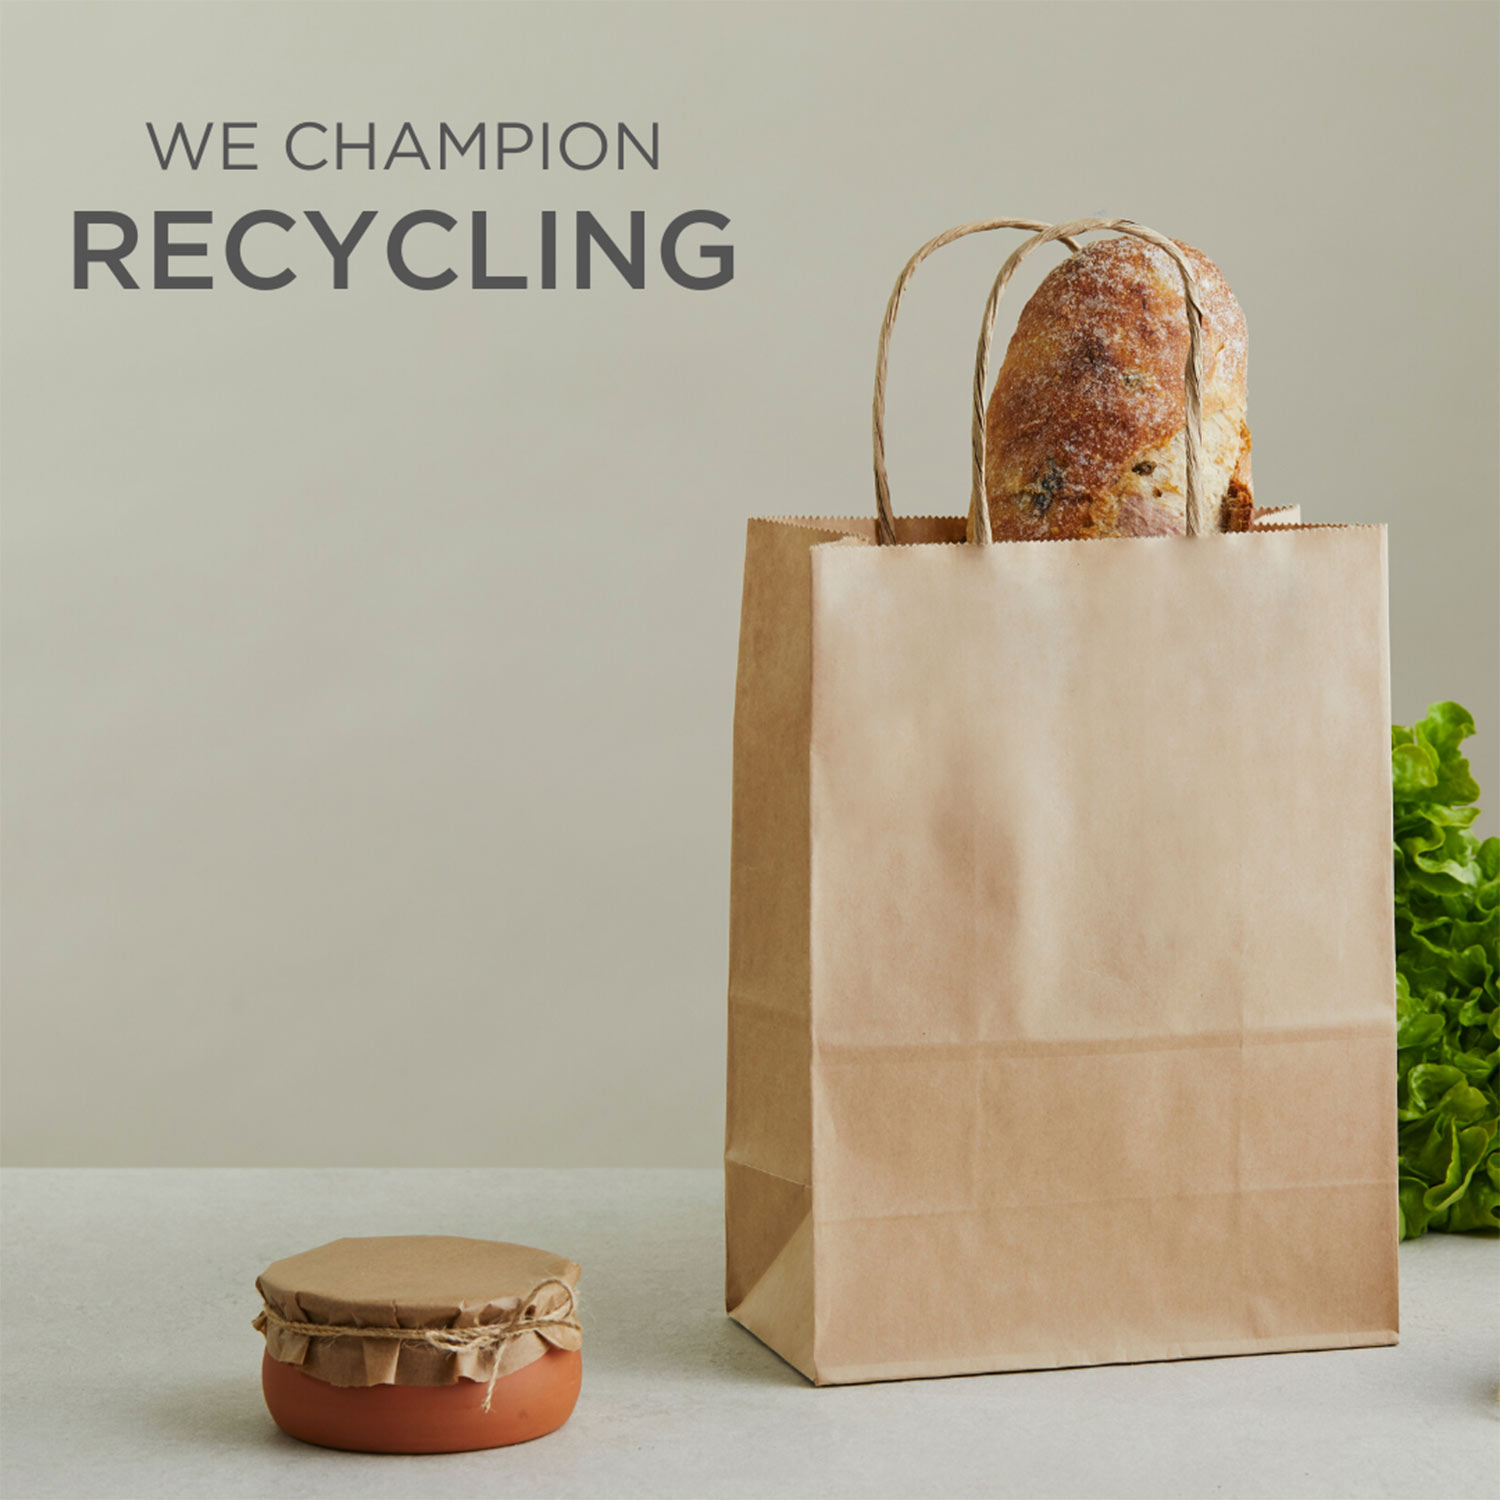 Image of a recyclable paper bag with words 'we champion recycling'